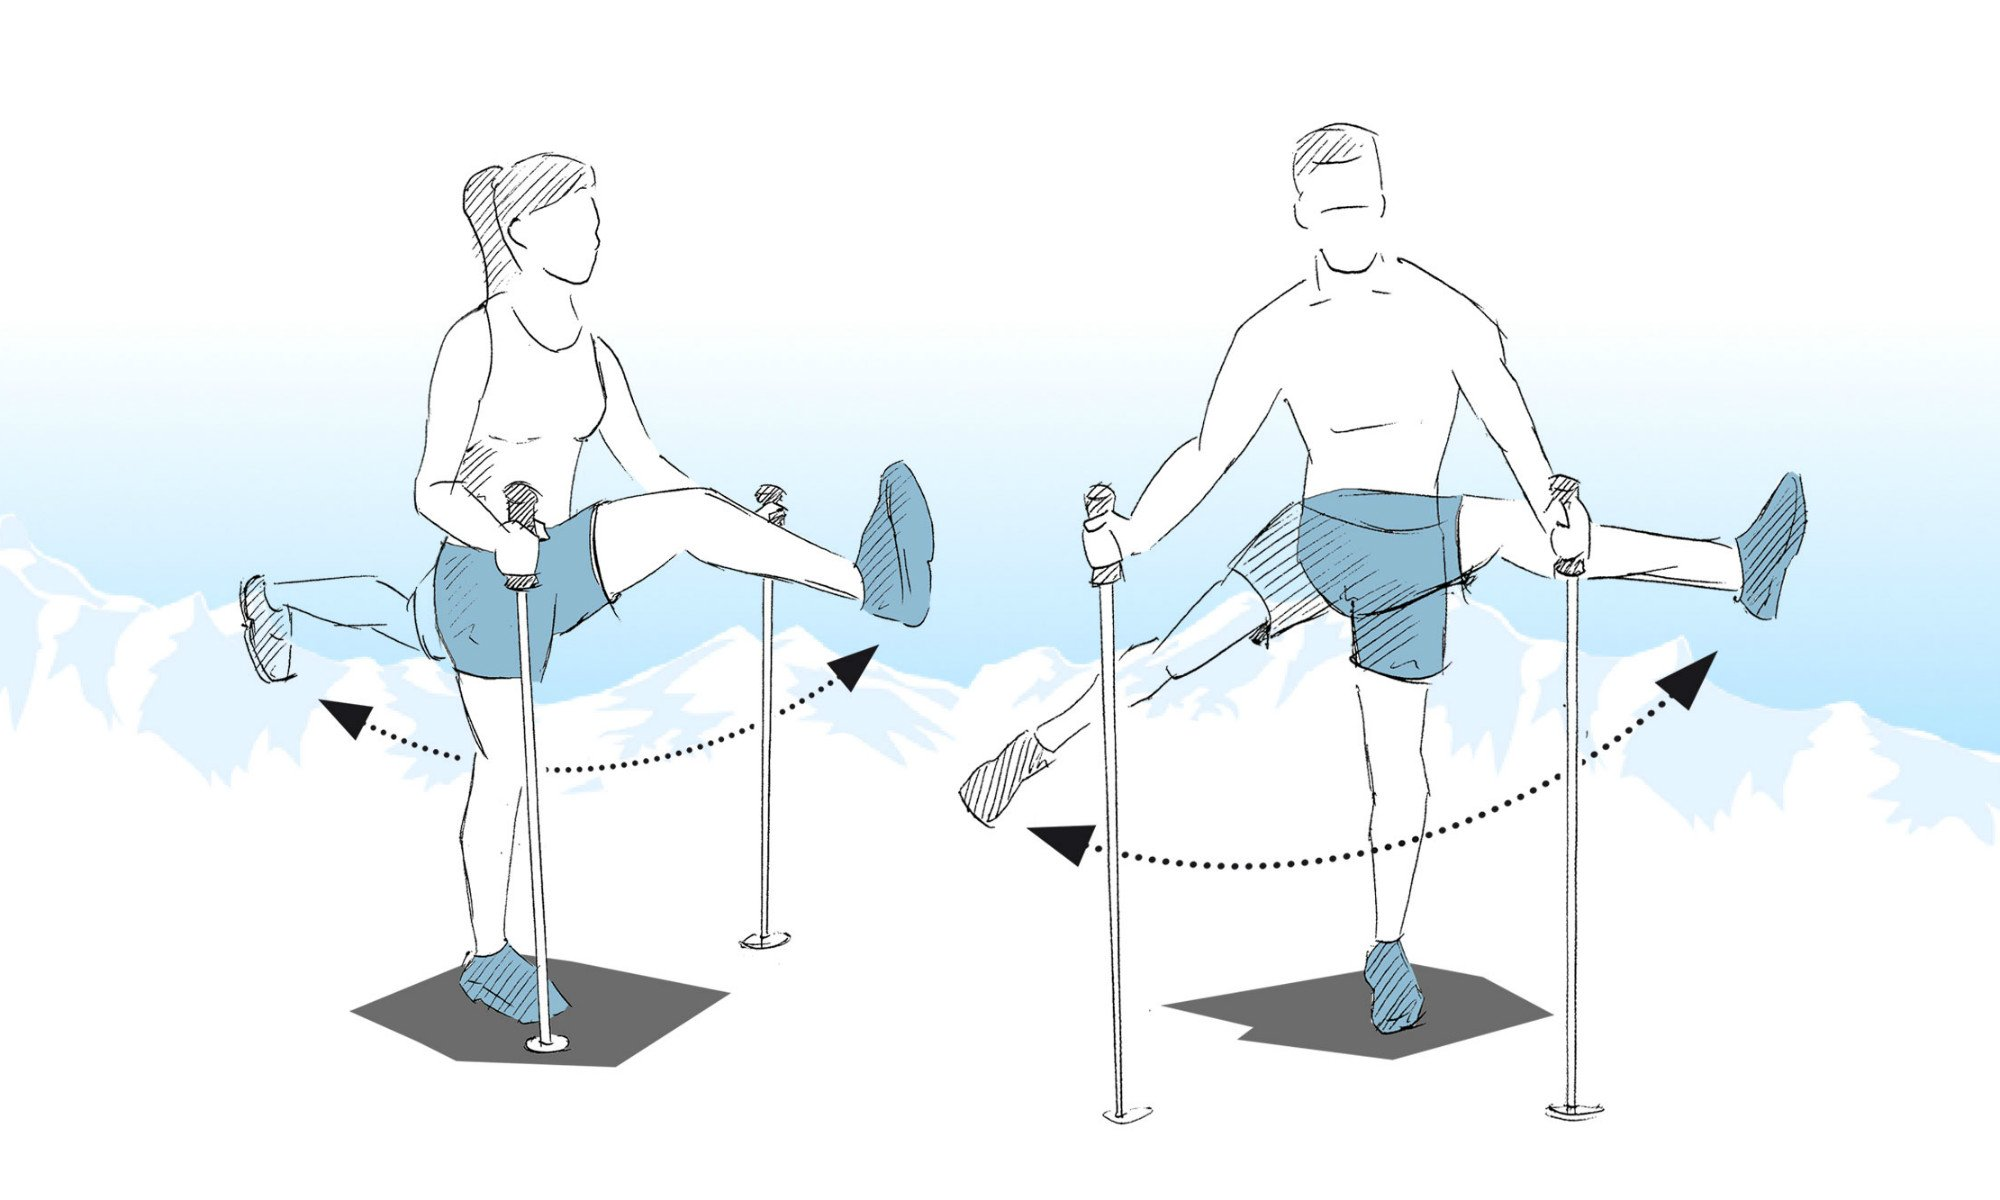 Demonstration of leg swings.